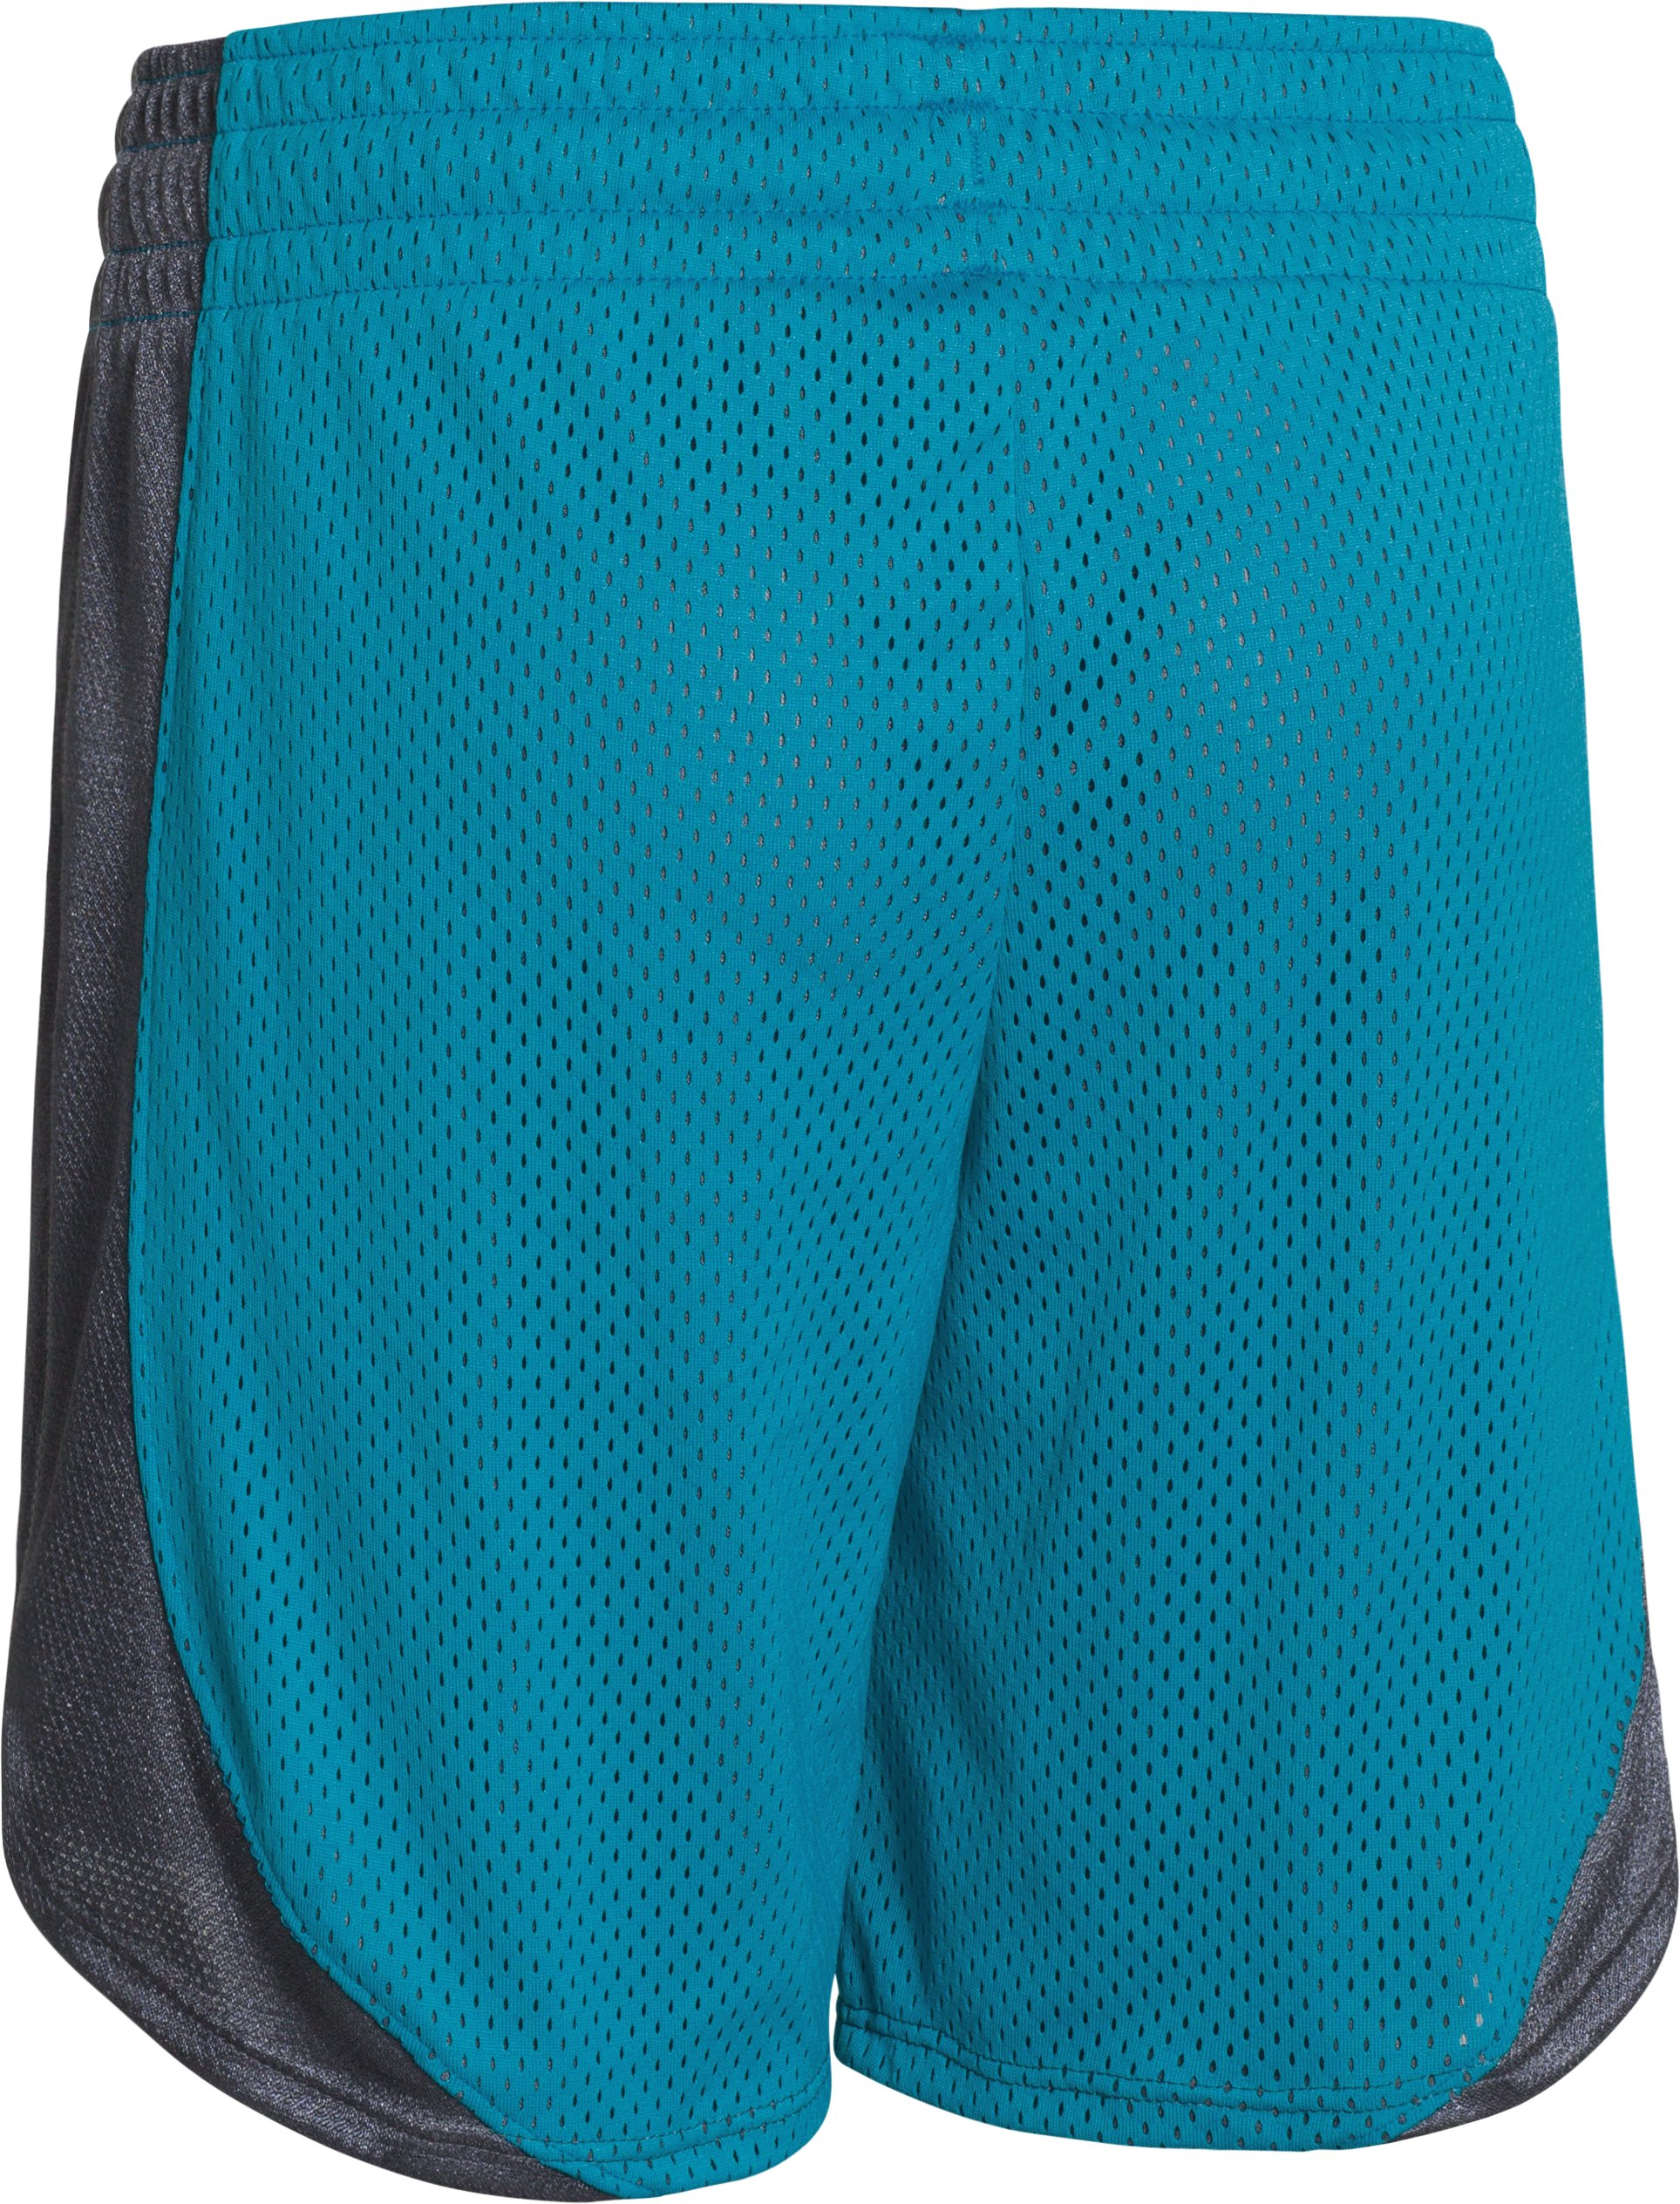 "Girls' UA Skillz 7"" Short, TEAL ICE"